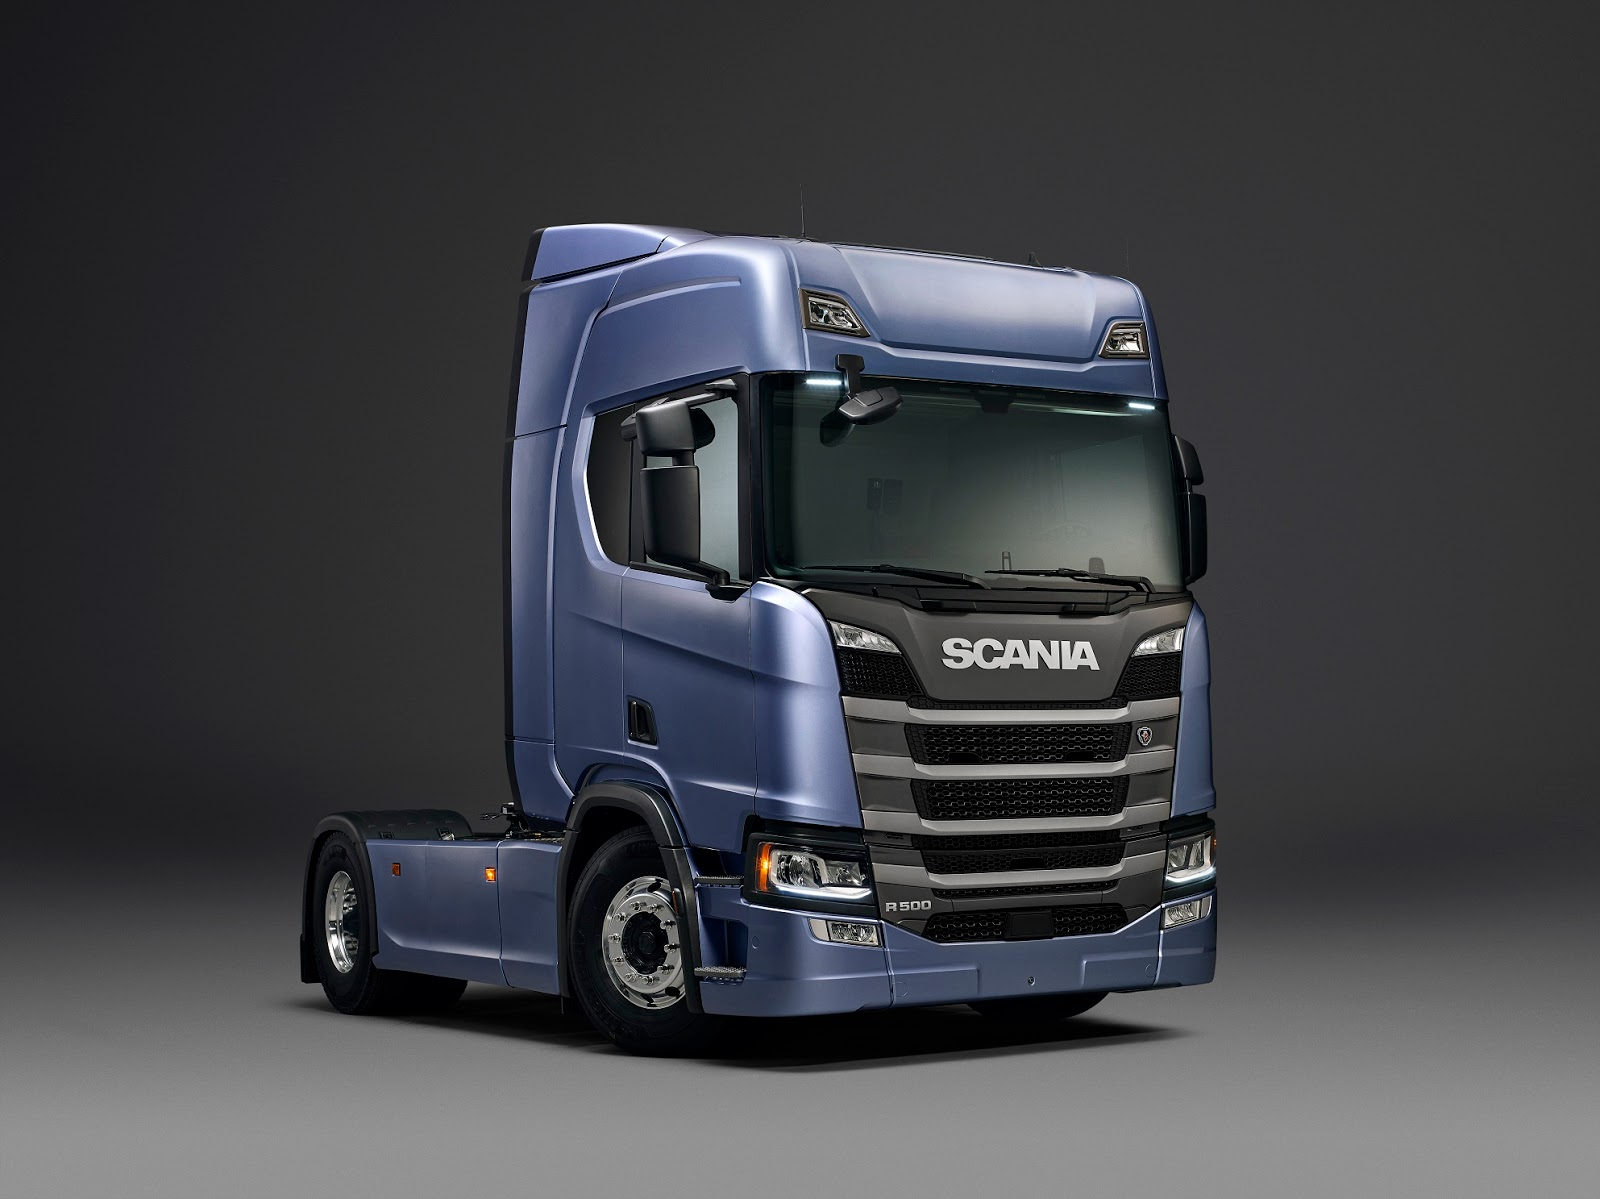 scania s next generation s and r trucks unveiled wagenclub. Black Bedroom Furniture Sets. Home Design Ideas